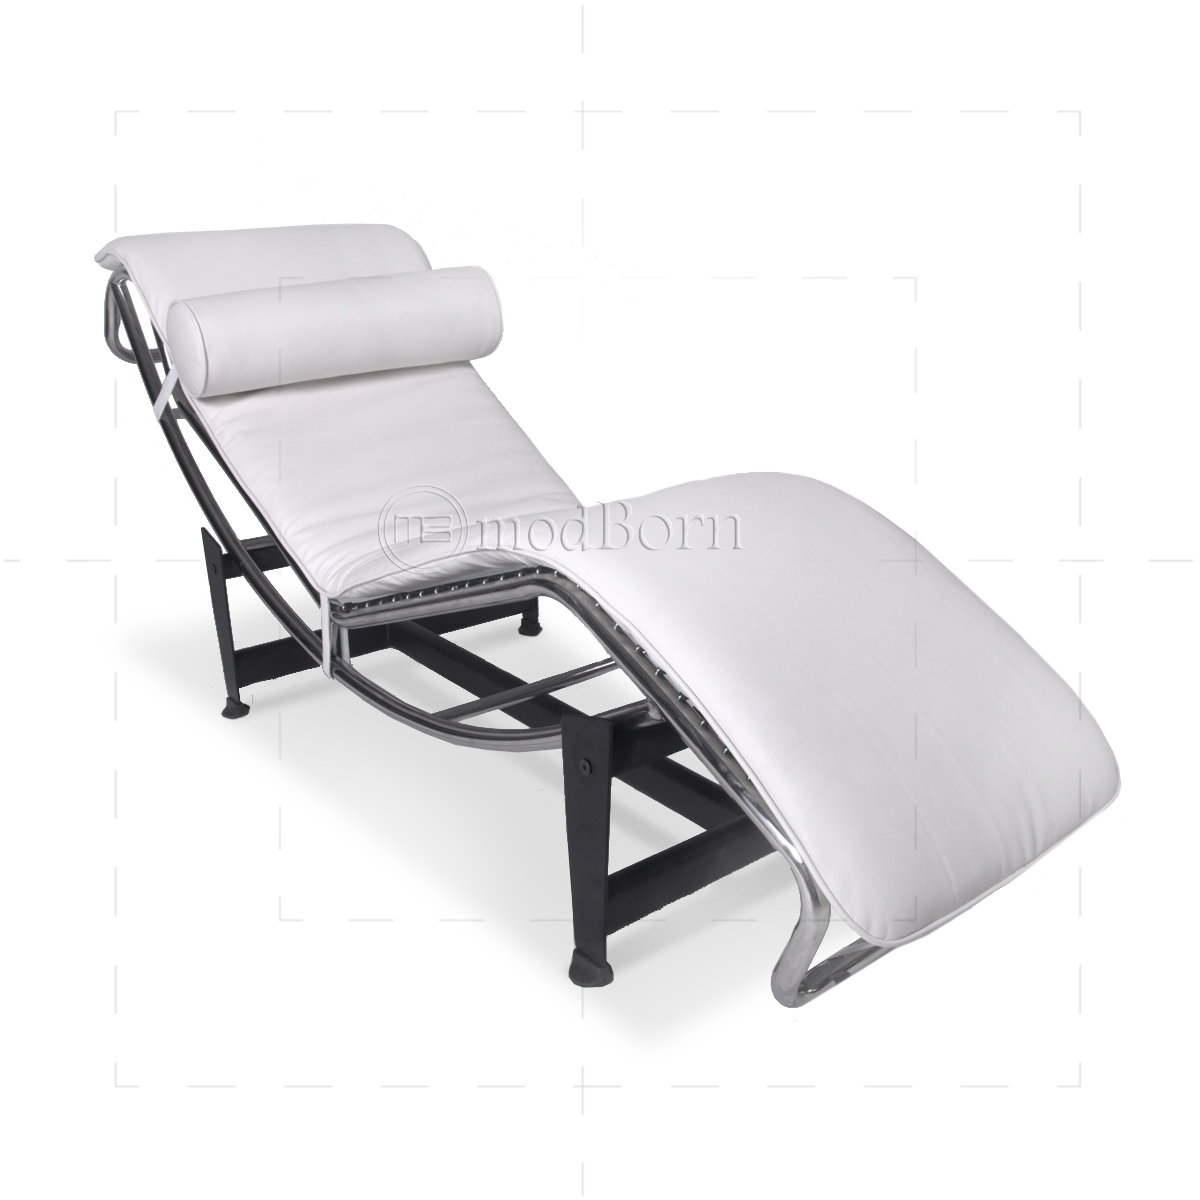 Le corbusier style lc4 chaise longue white leather replica for Le corbusier replica